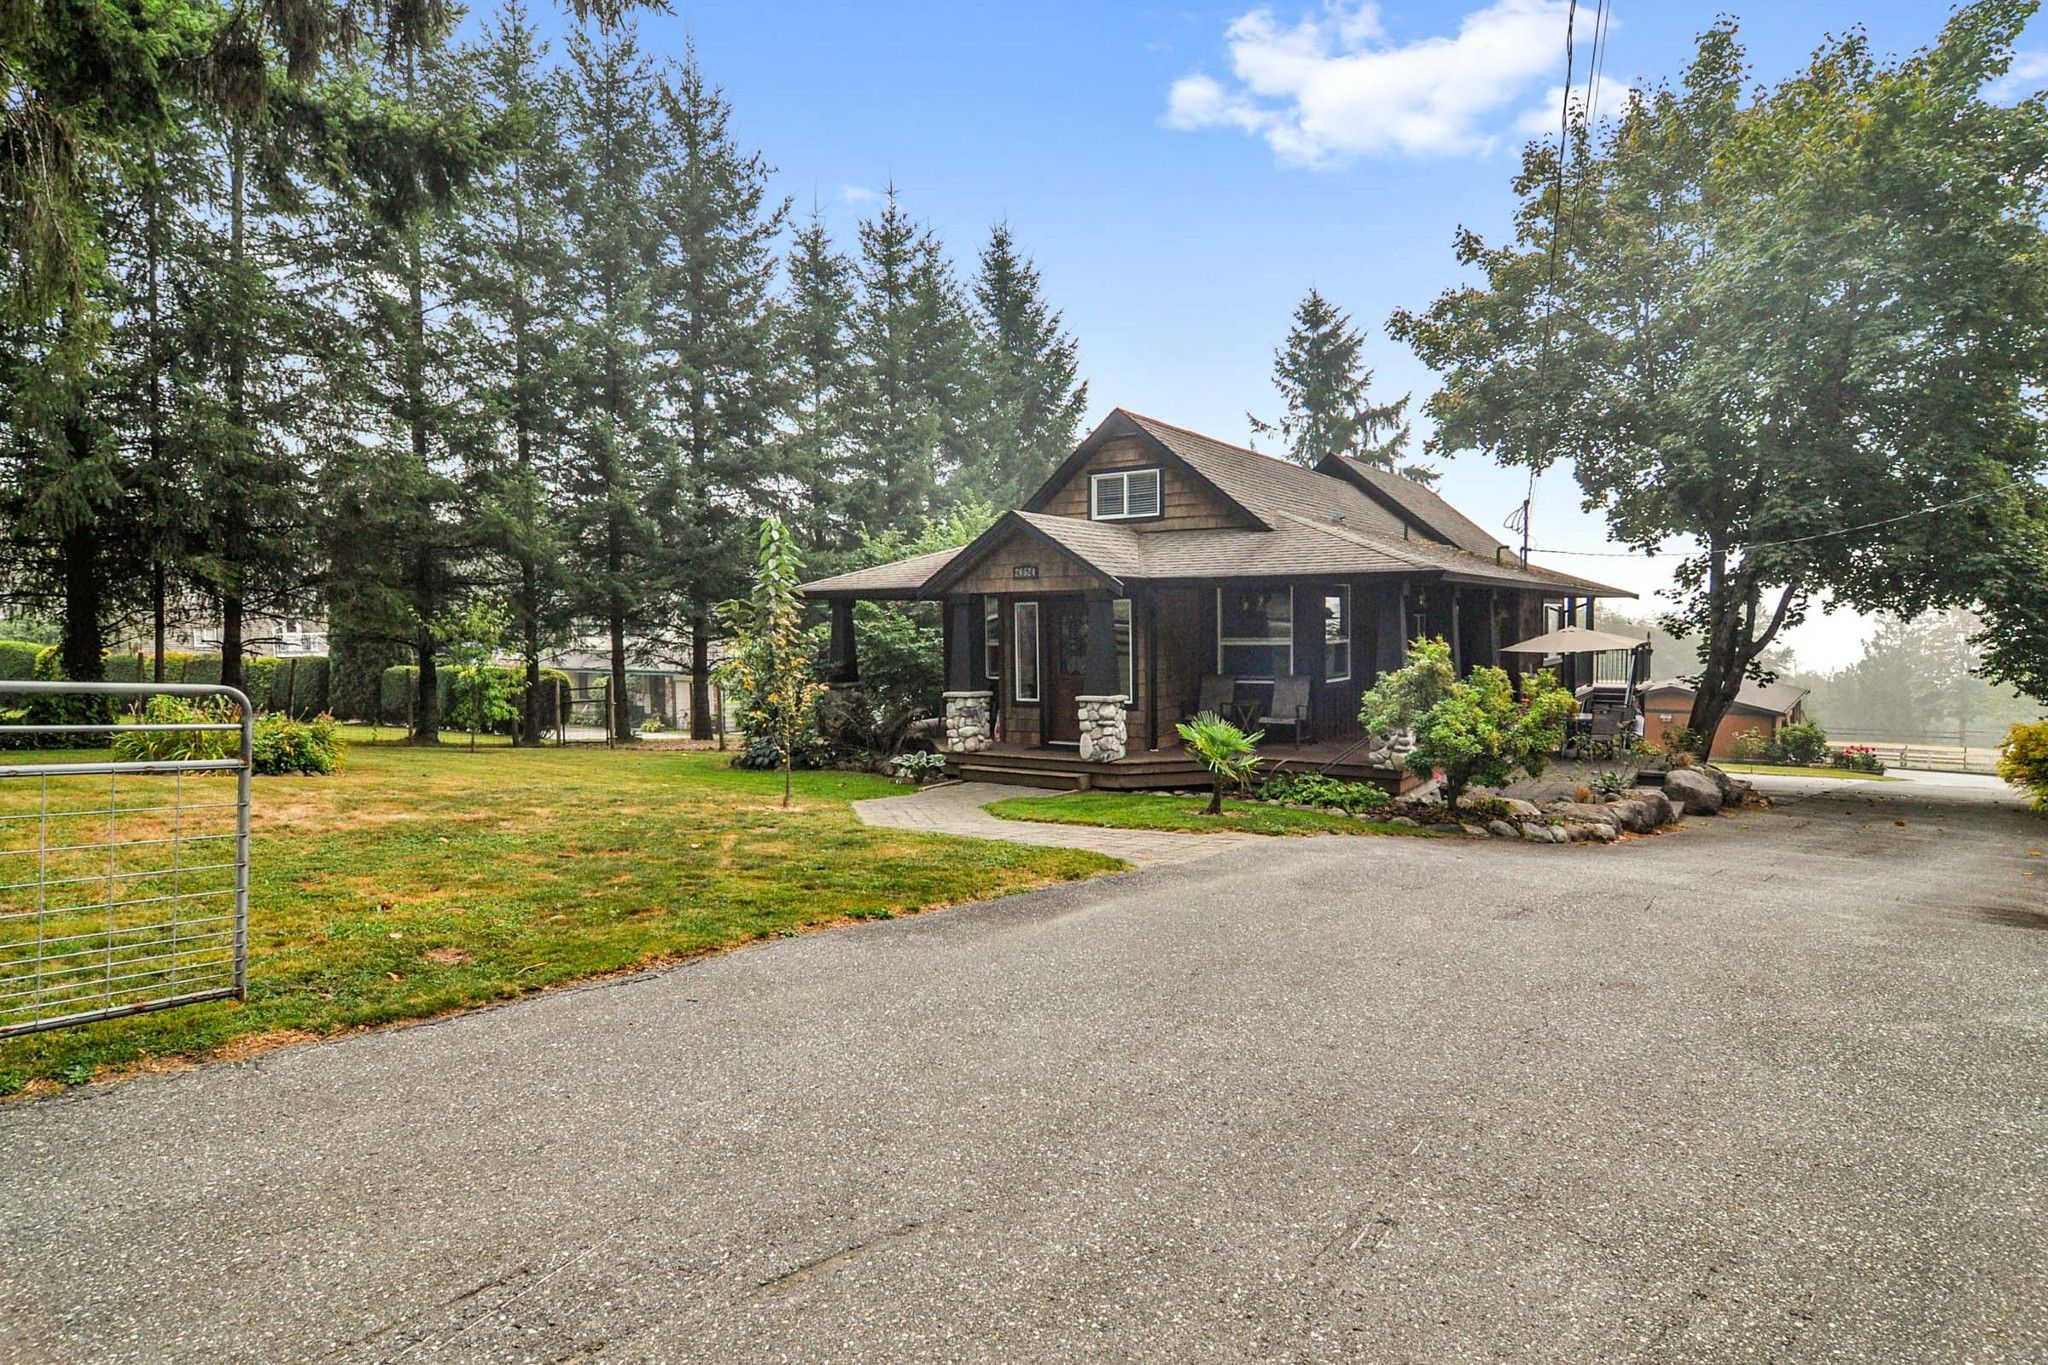 Main Photo: 26524 100 Avenue in Maple Ridge: Thornhill MR House for sale : MLS®# R2502037